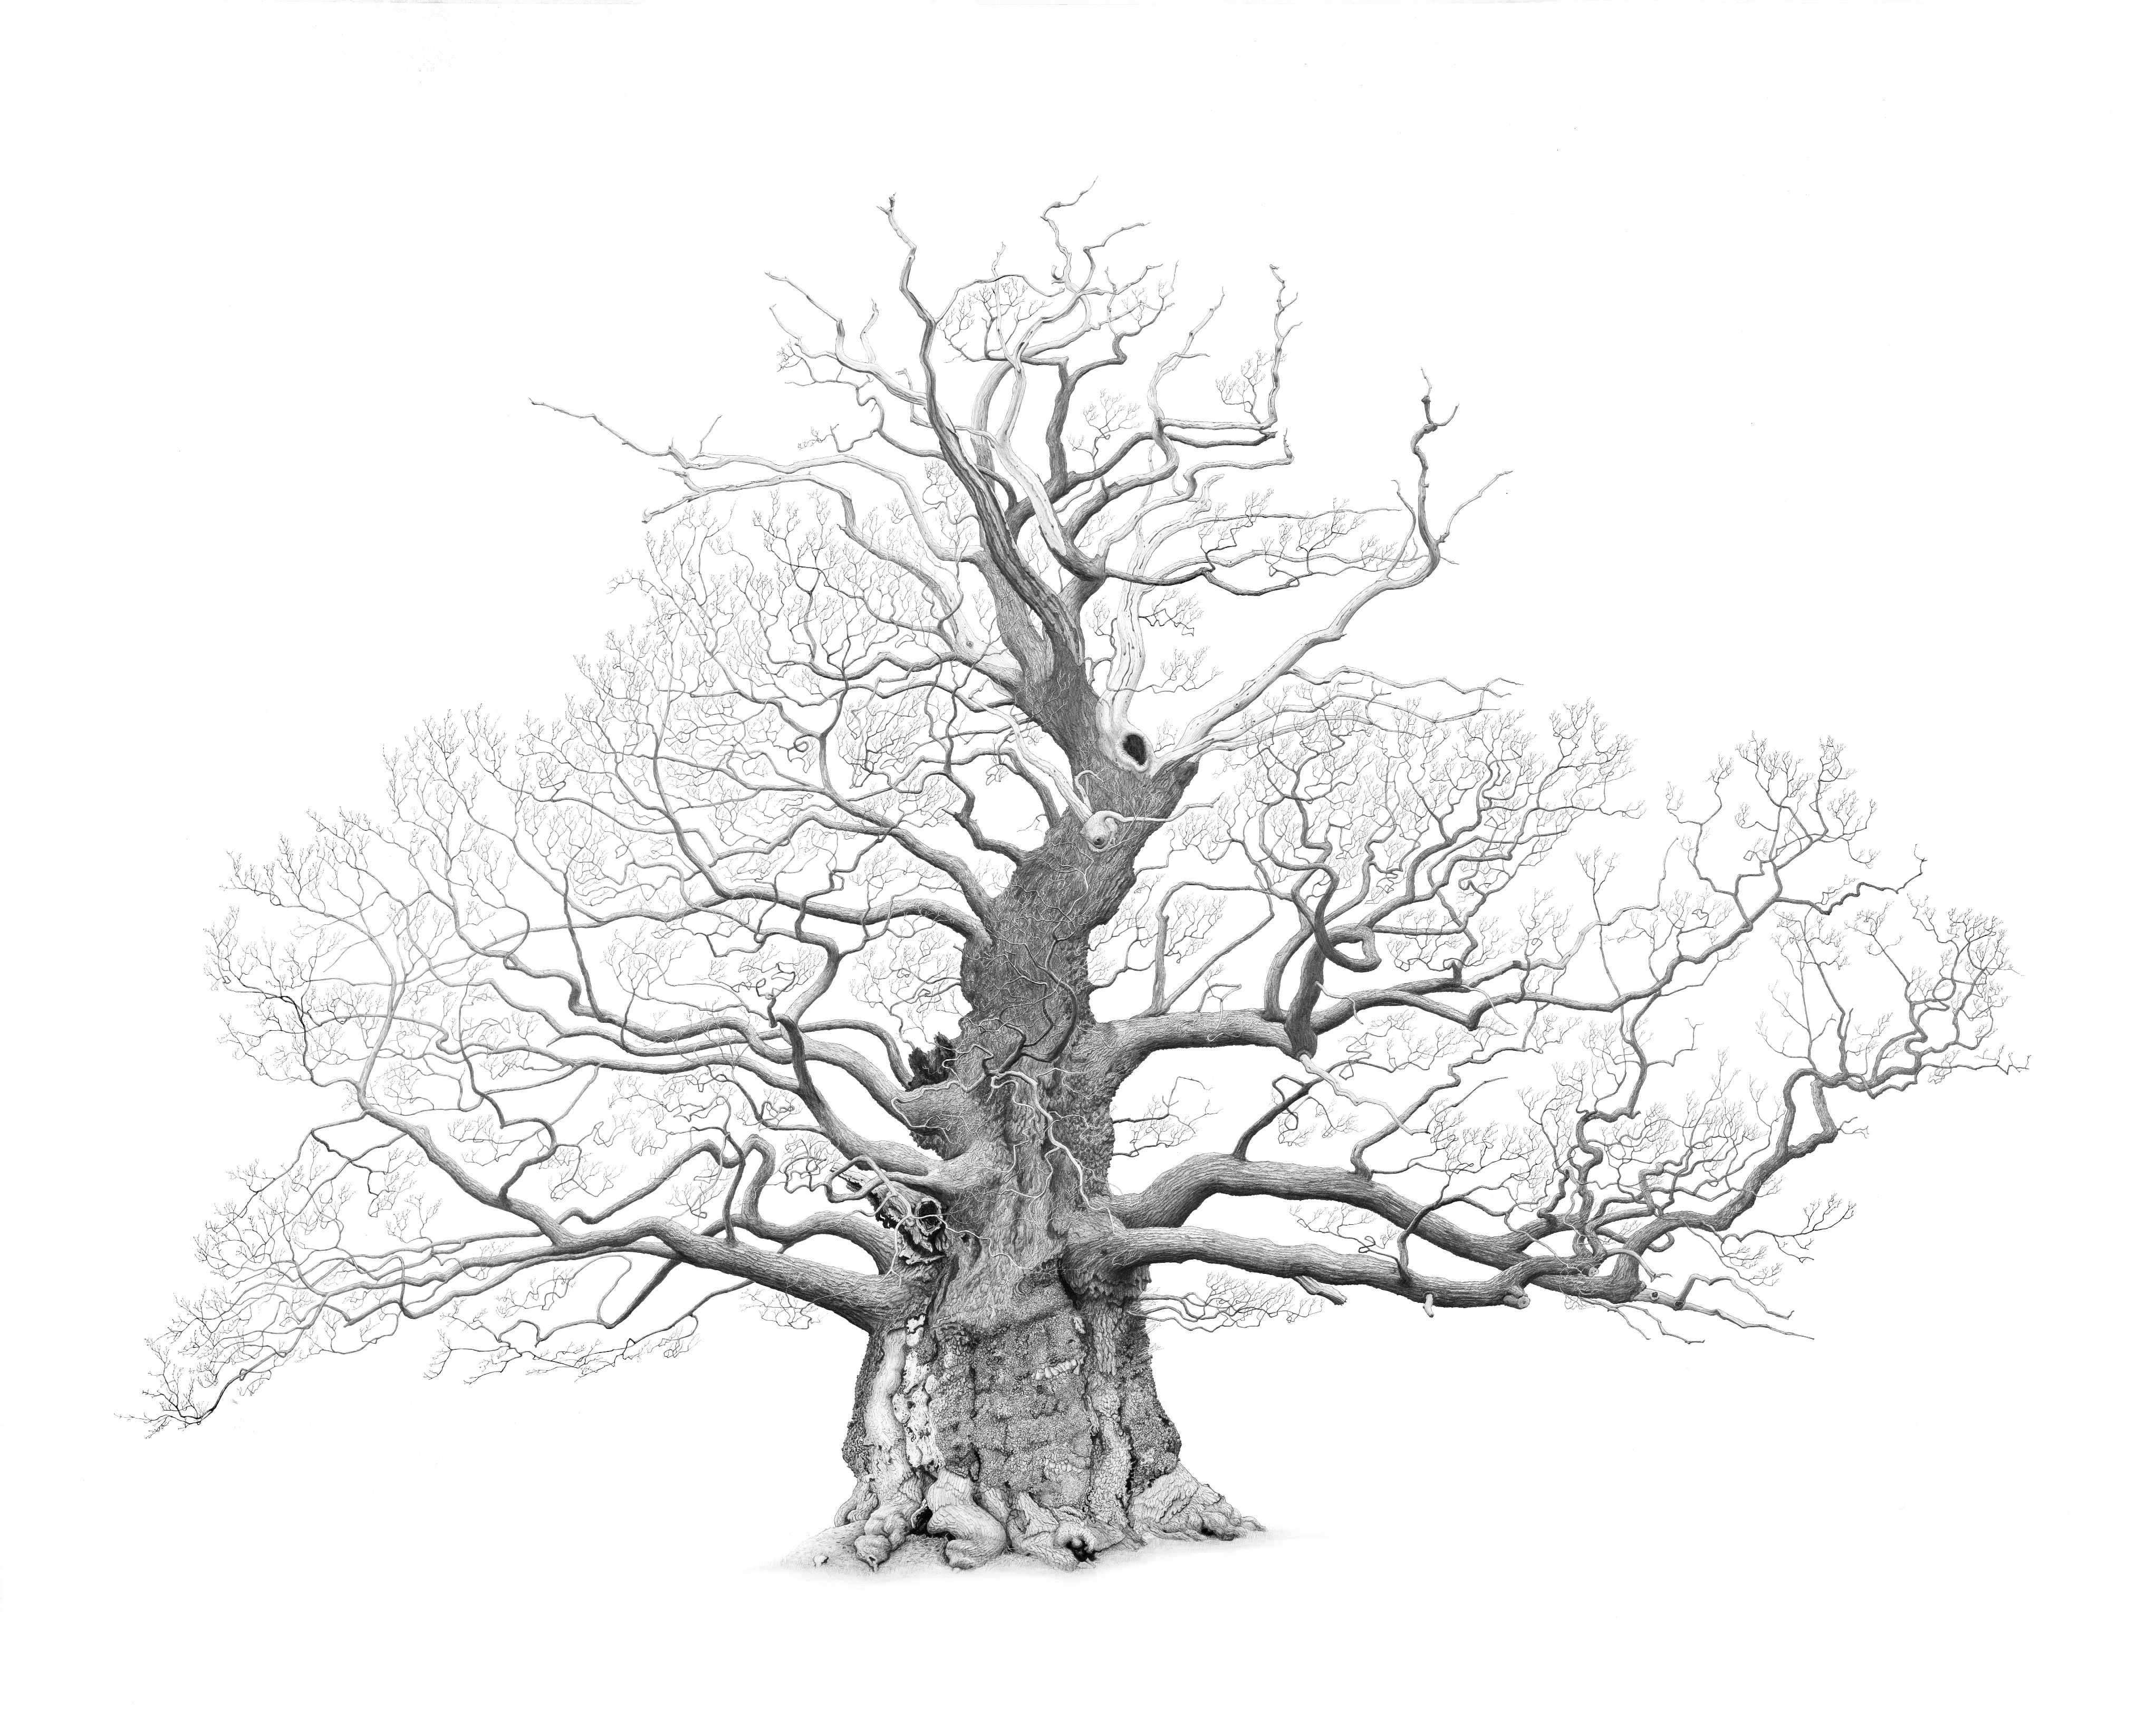 Drawing of The Great Oak in Nibley Green by artist Mark Frith